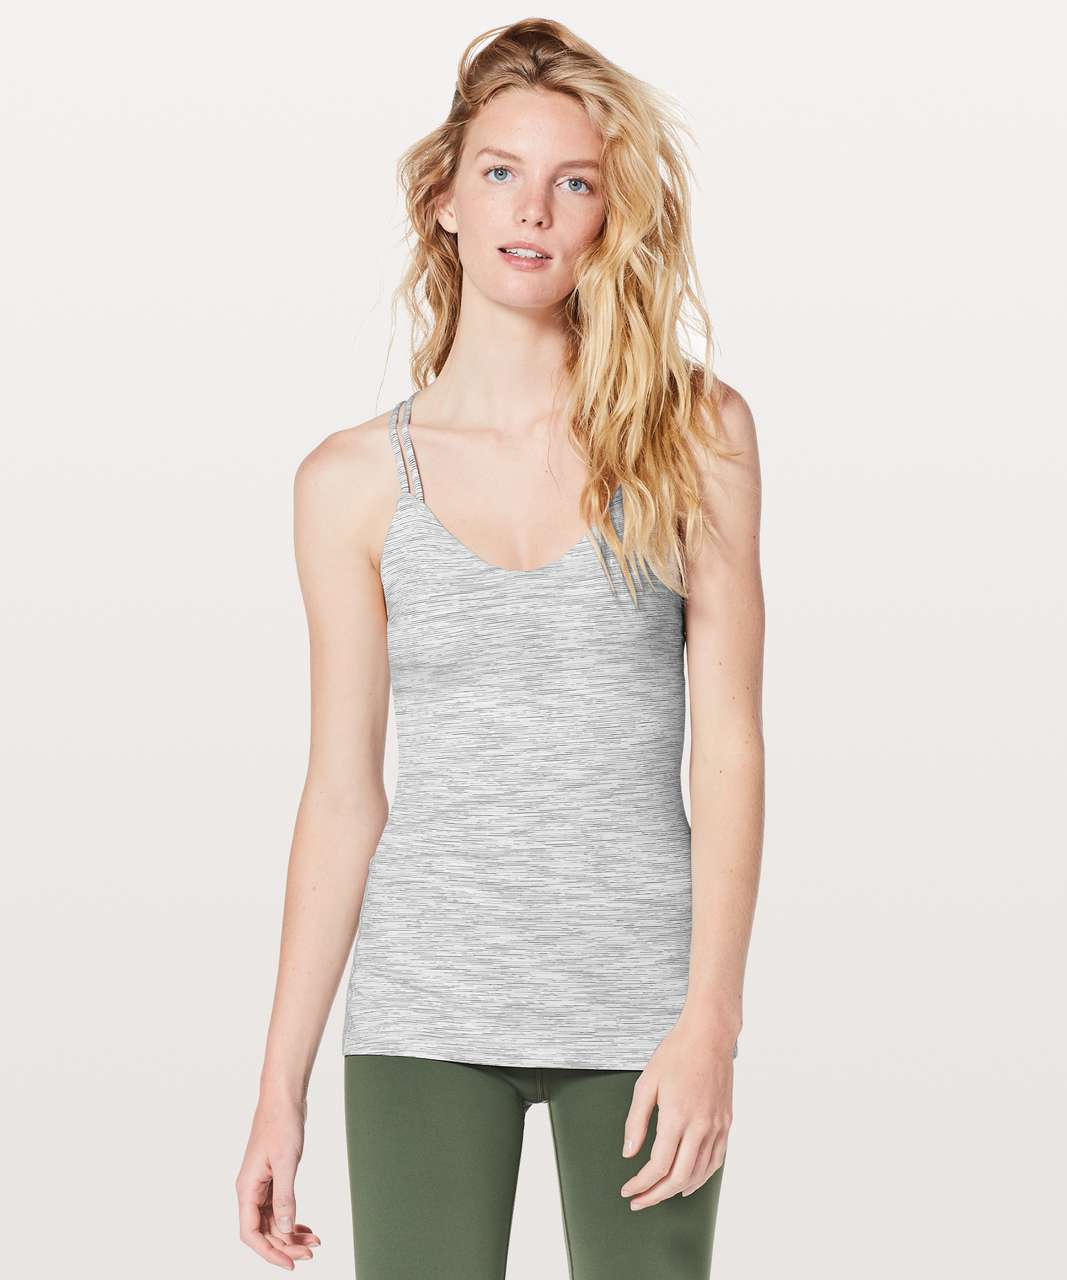 Lululemon Create Your Calm Tank - Wee Are From Space Nimbus Battleship